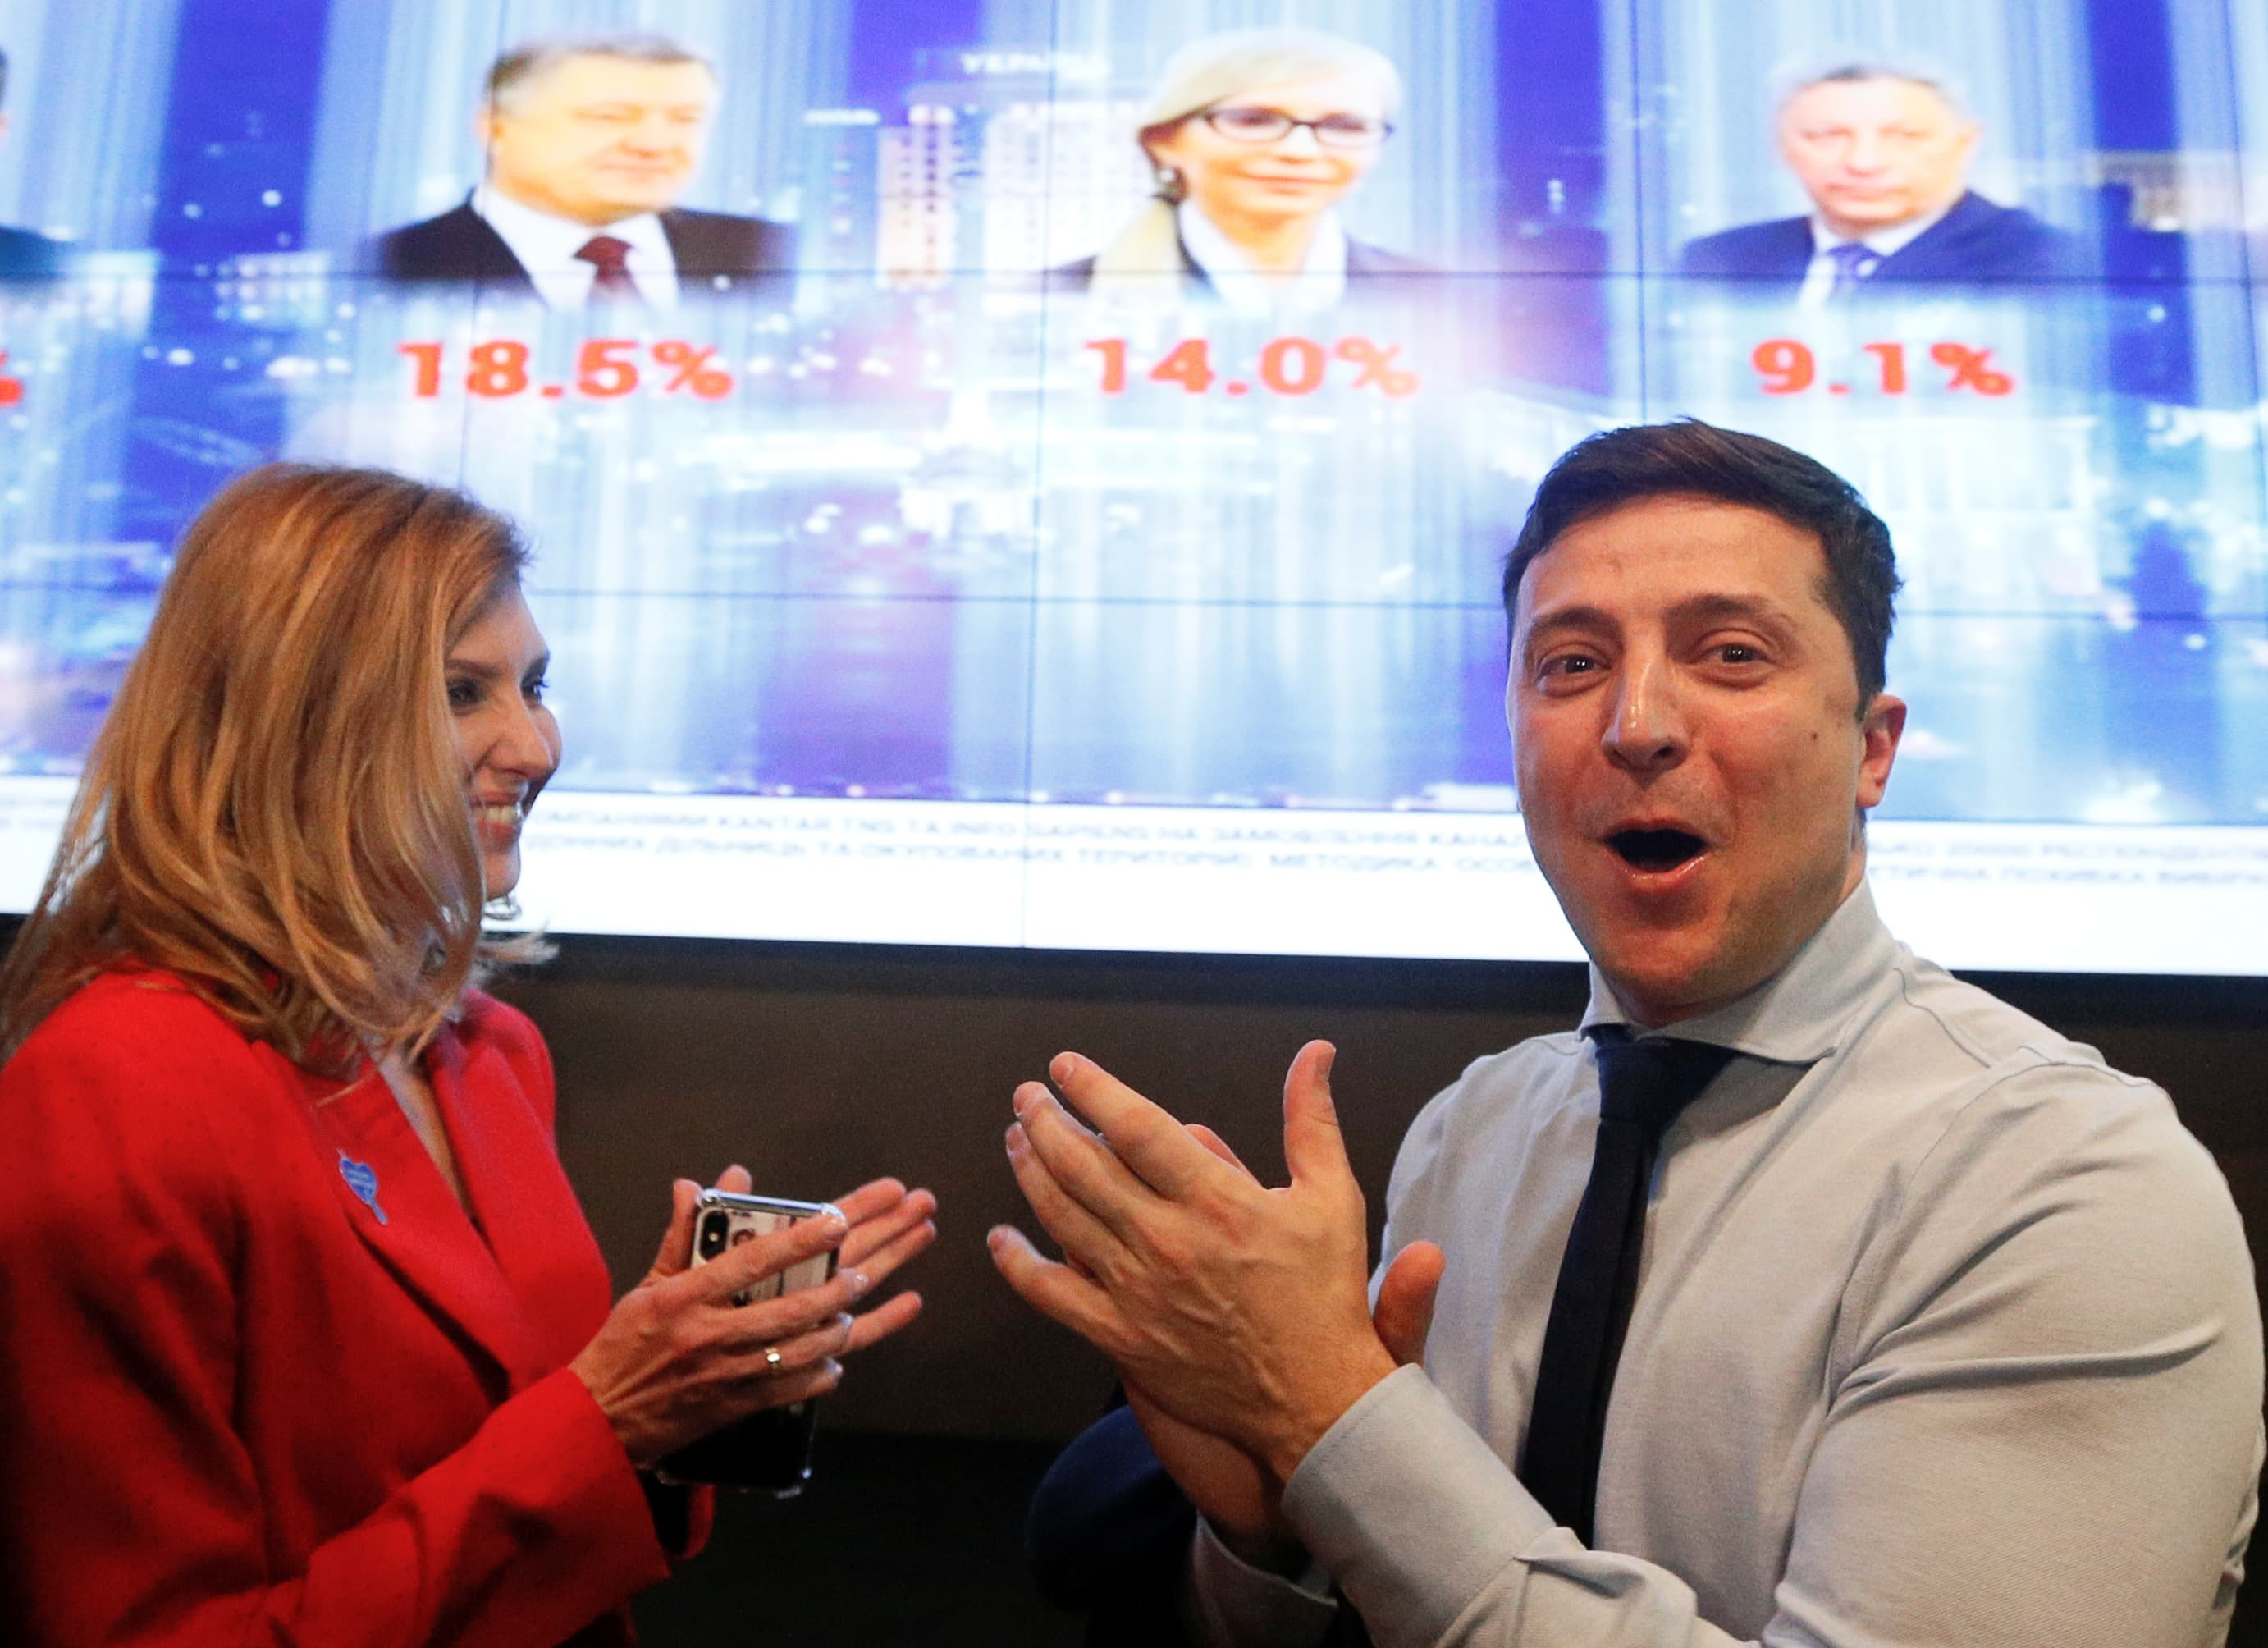 Ukraine elections: Comedian secures comfortable first-round win